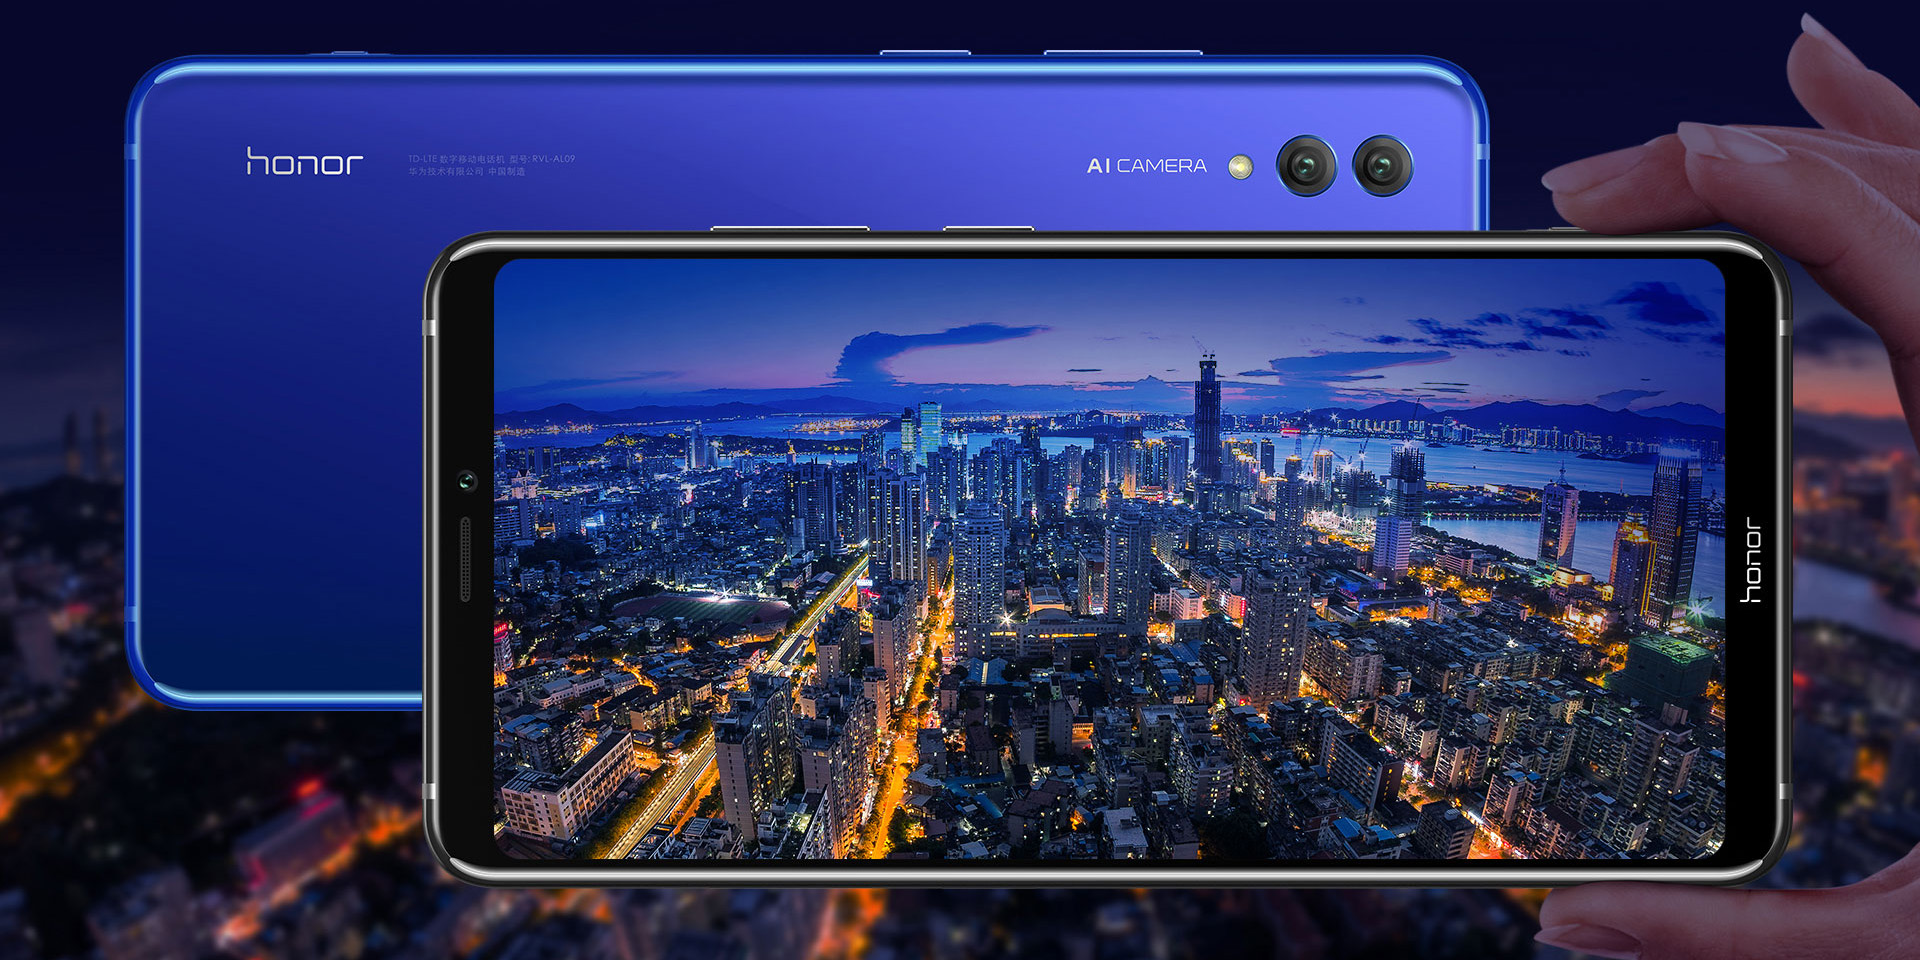 Honor Note 10 goes official w/ a 7-inch screen in a smartphone-sized body